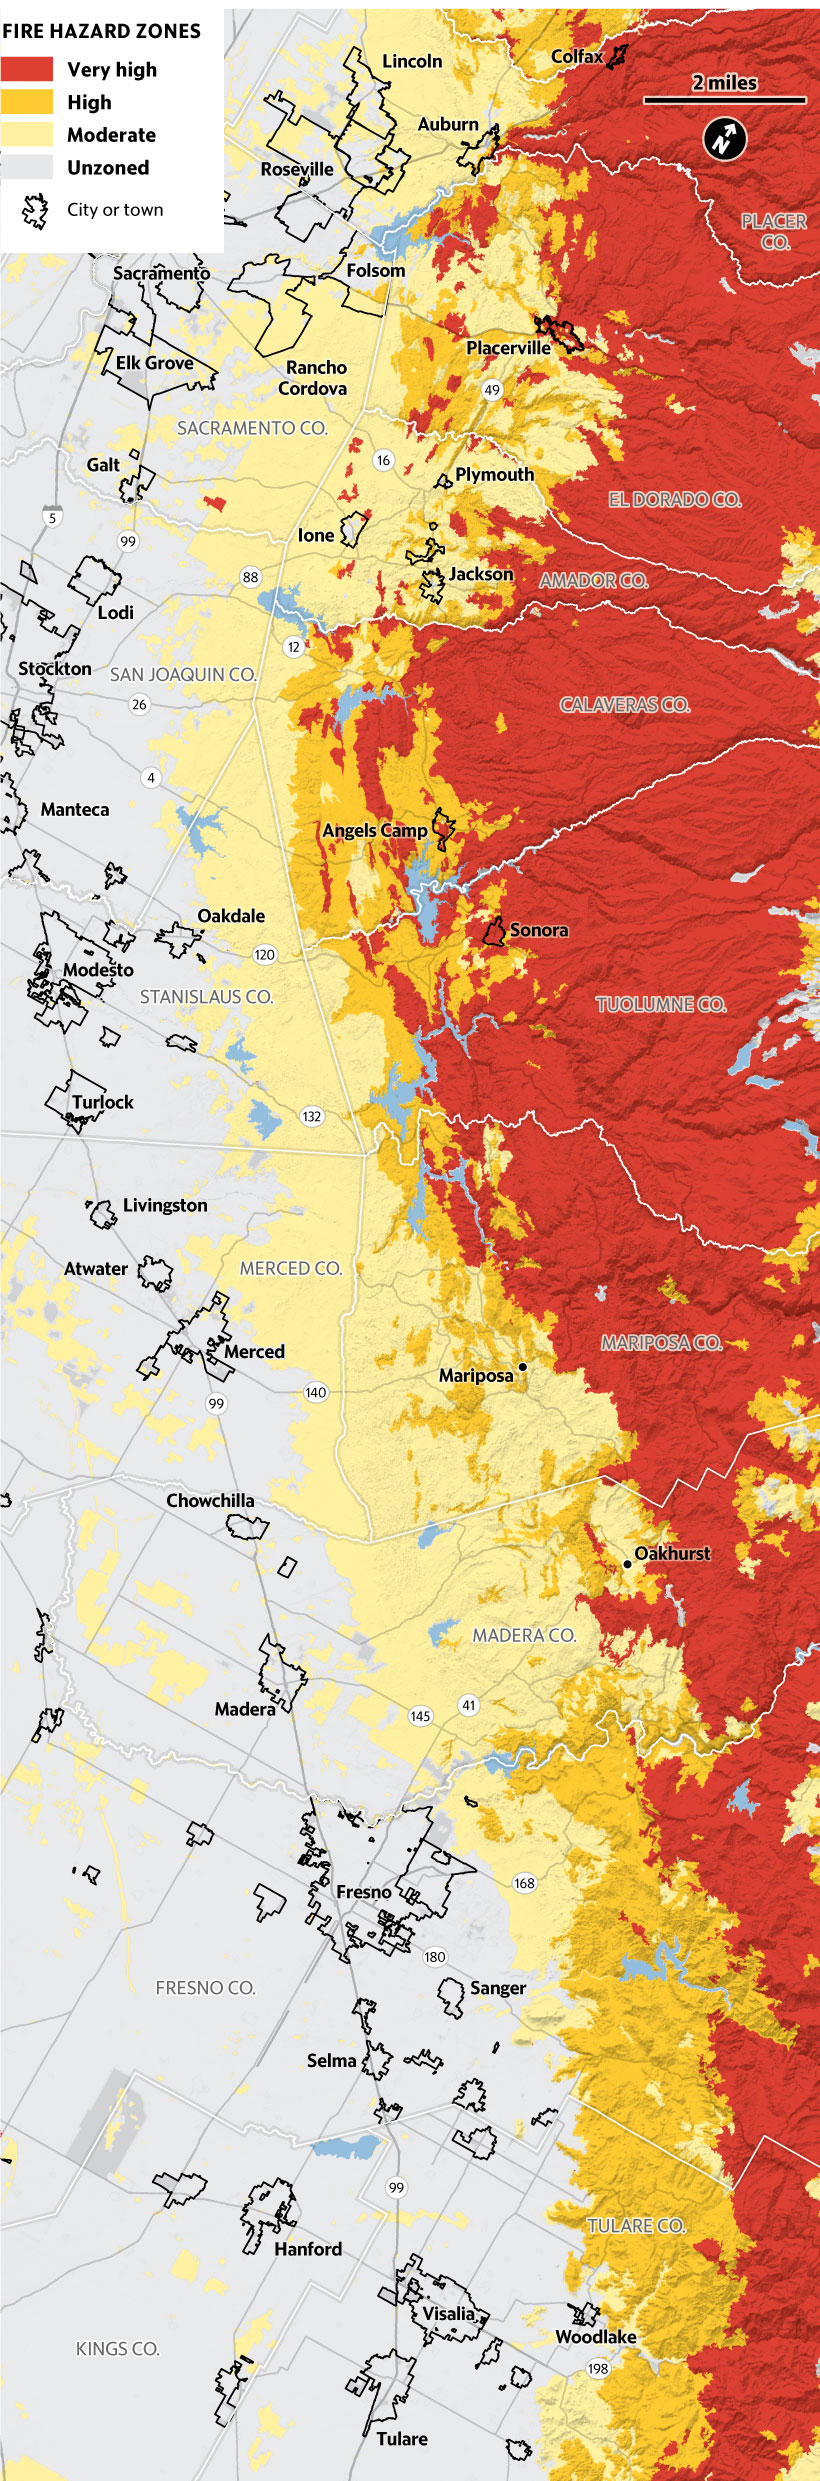 California | Should Housing Be Built In High Fire Risk Areas? | The - California Wildfire Risk Map